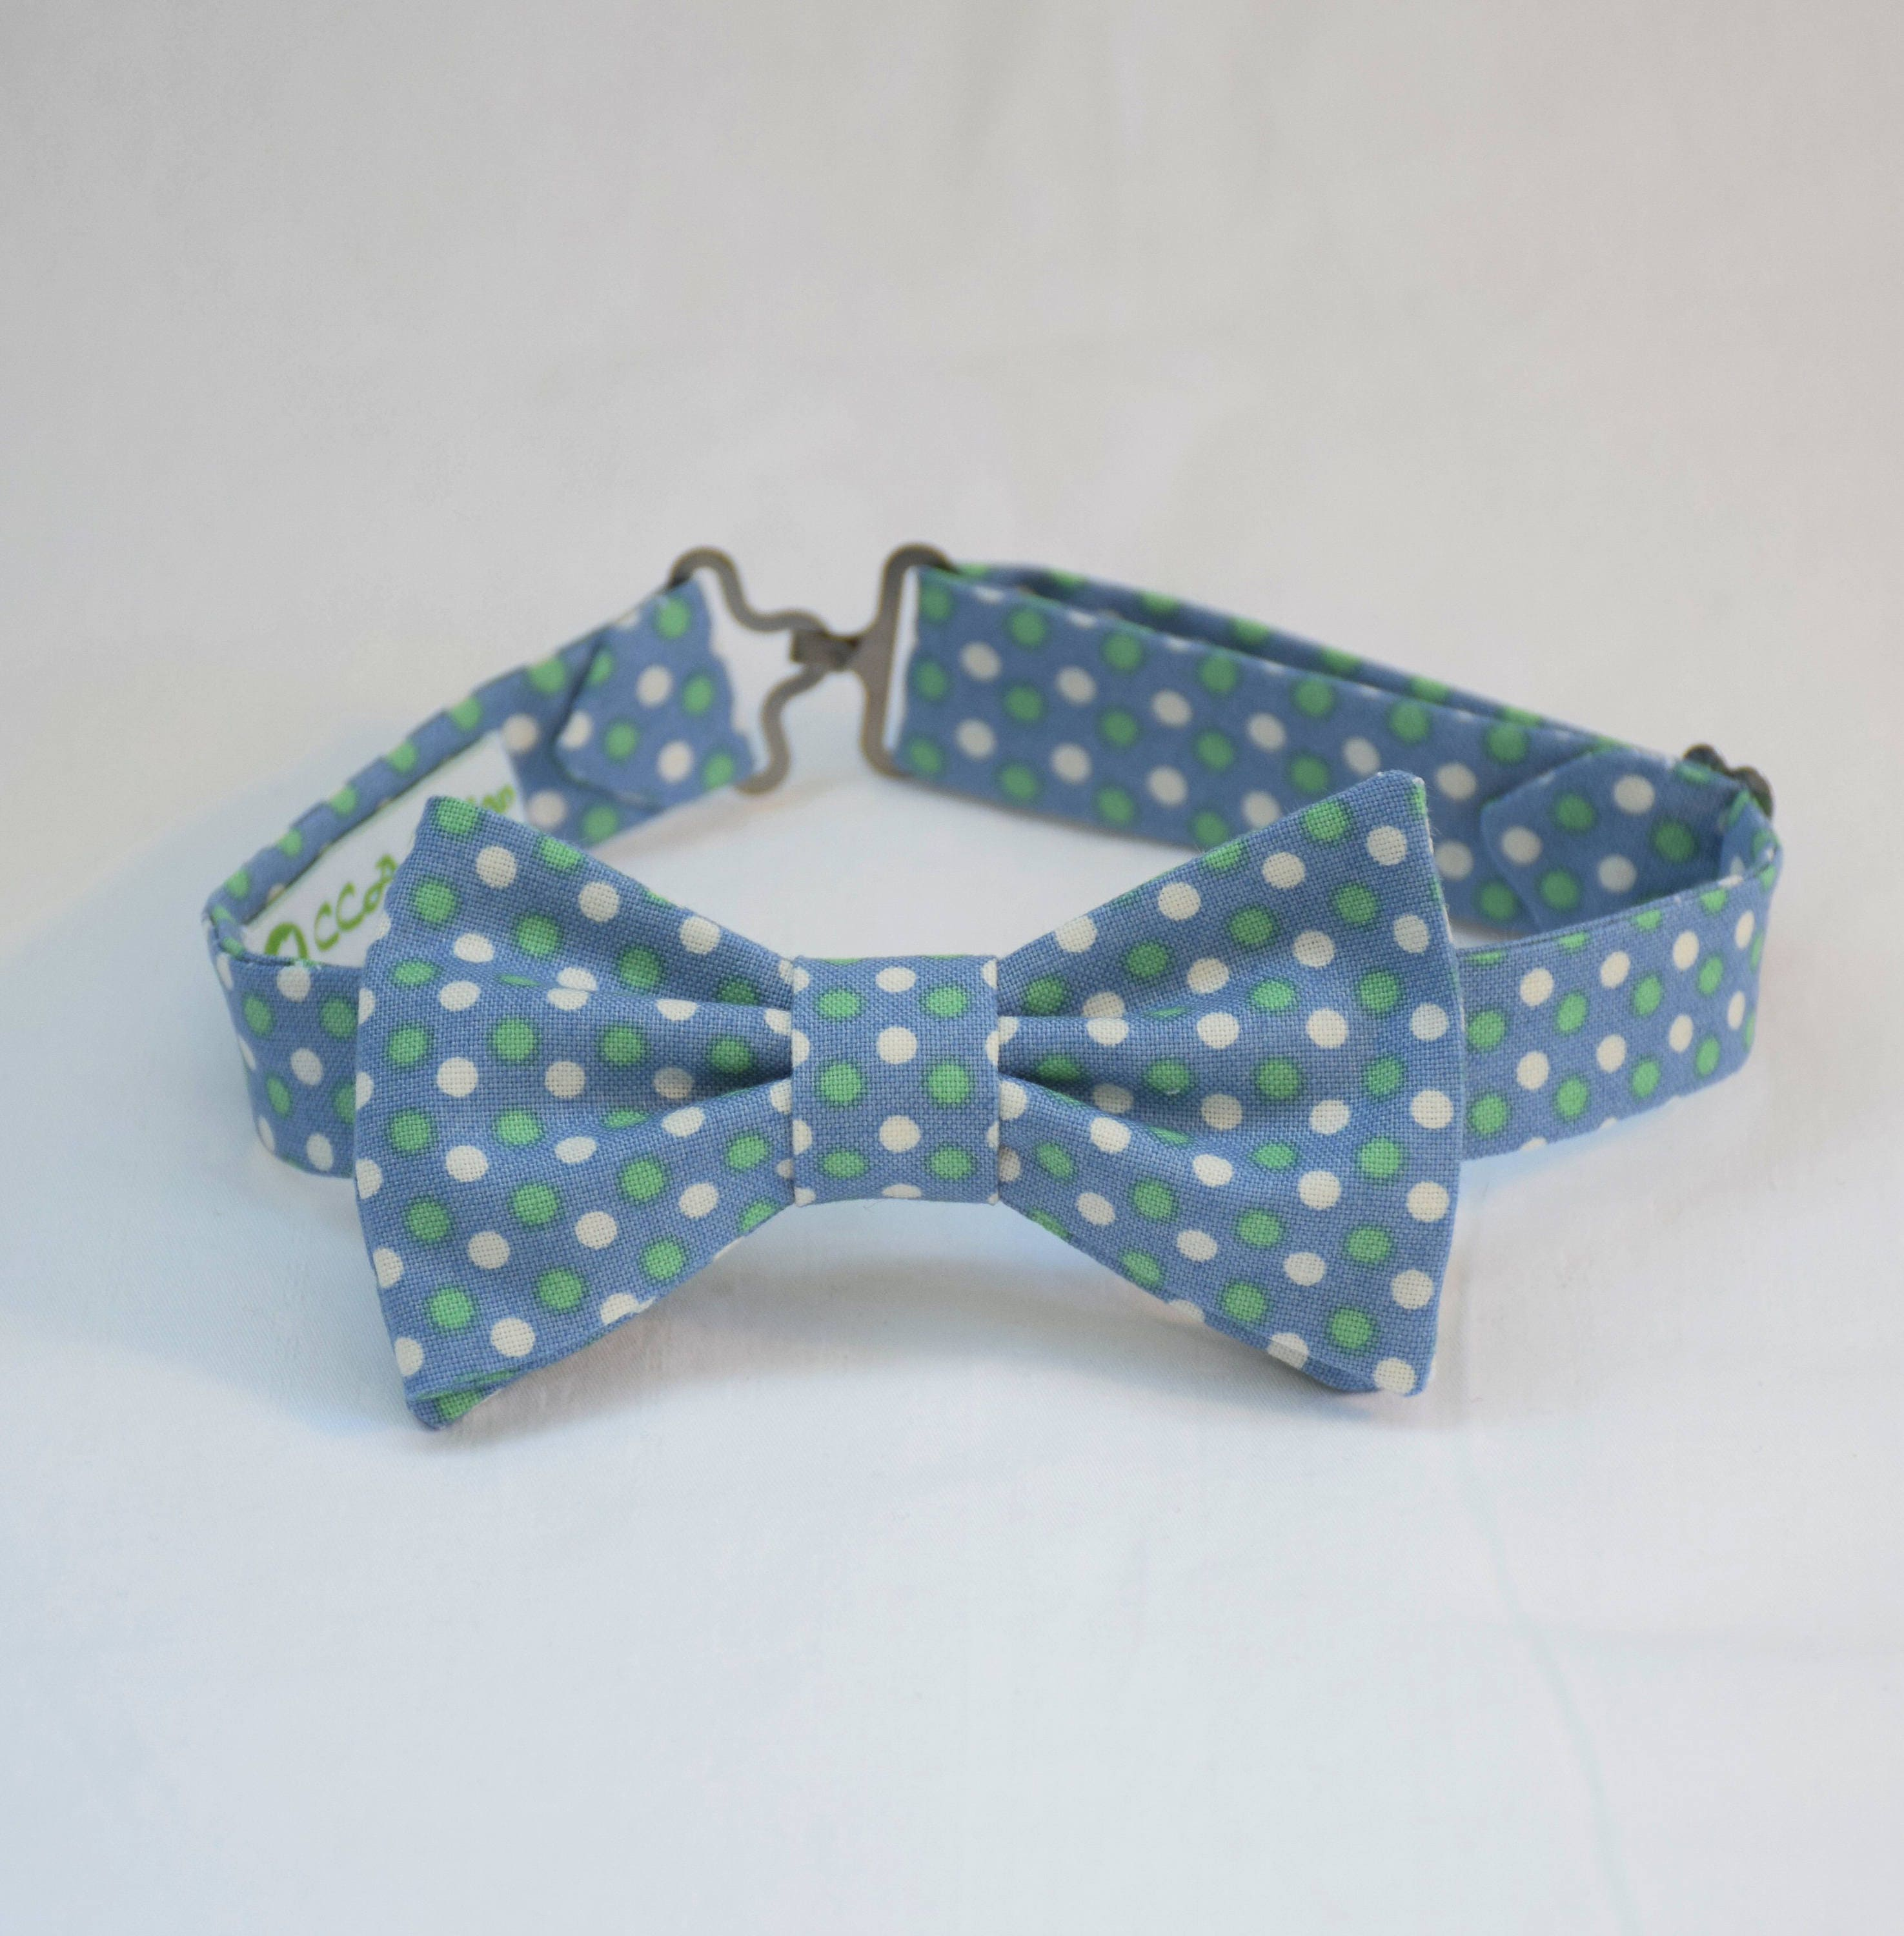 b6904b91659c Boy's pre-tied Bow Tie, light blue/white/green dots, Easter bow tie ...